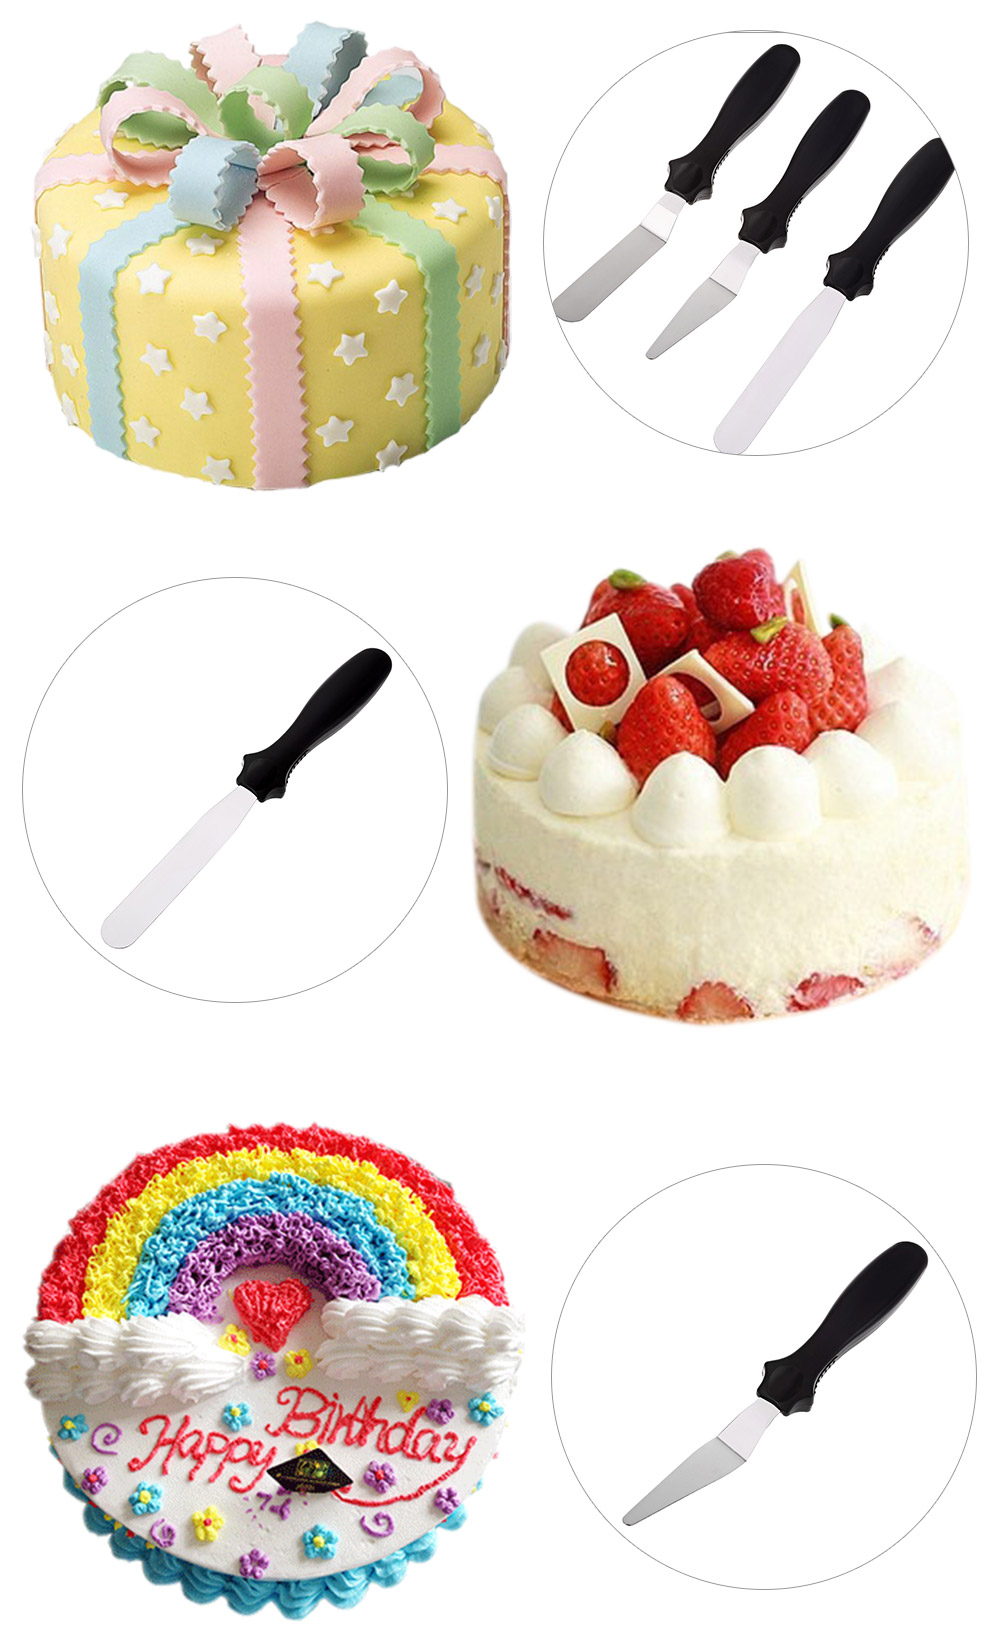 3pcs Stainless Steel DIY Cake Cream Spread Decorating Smudge Tool